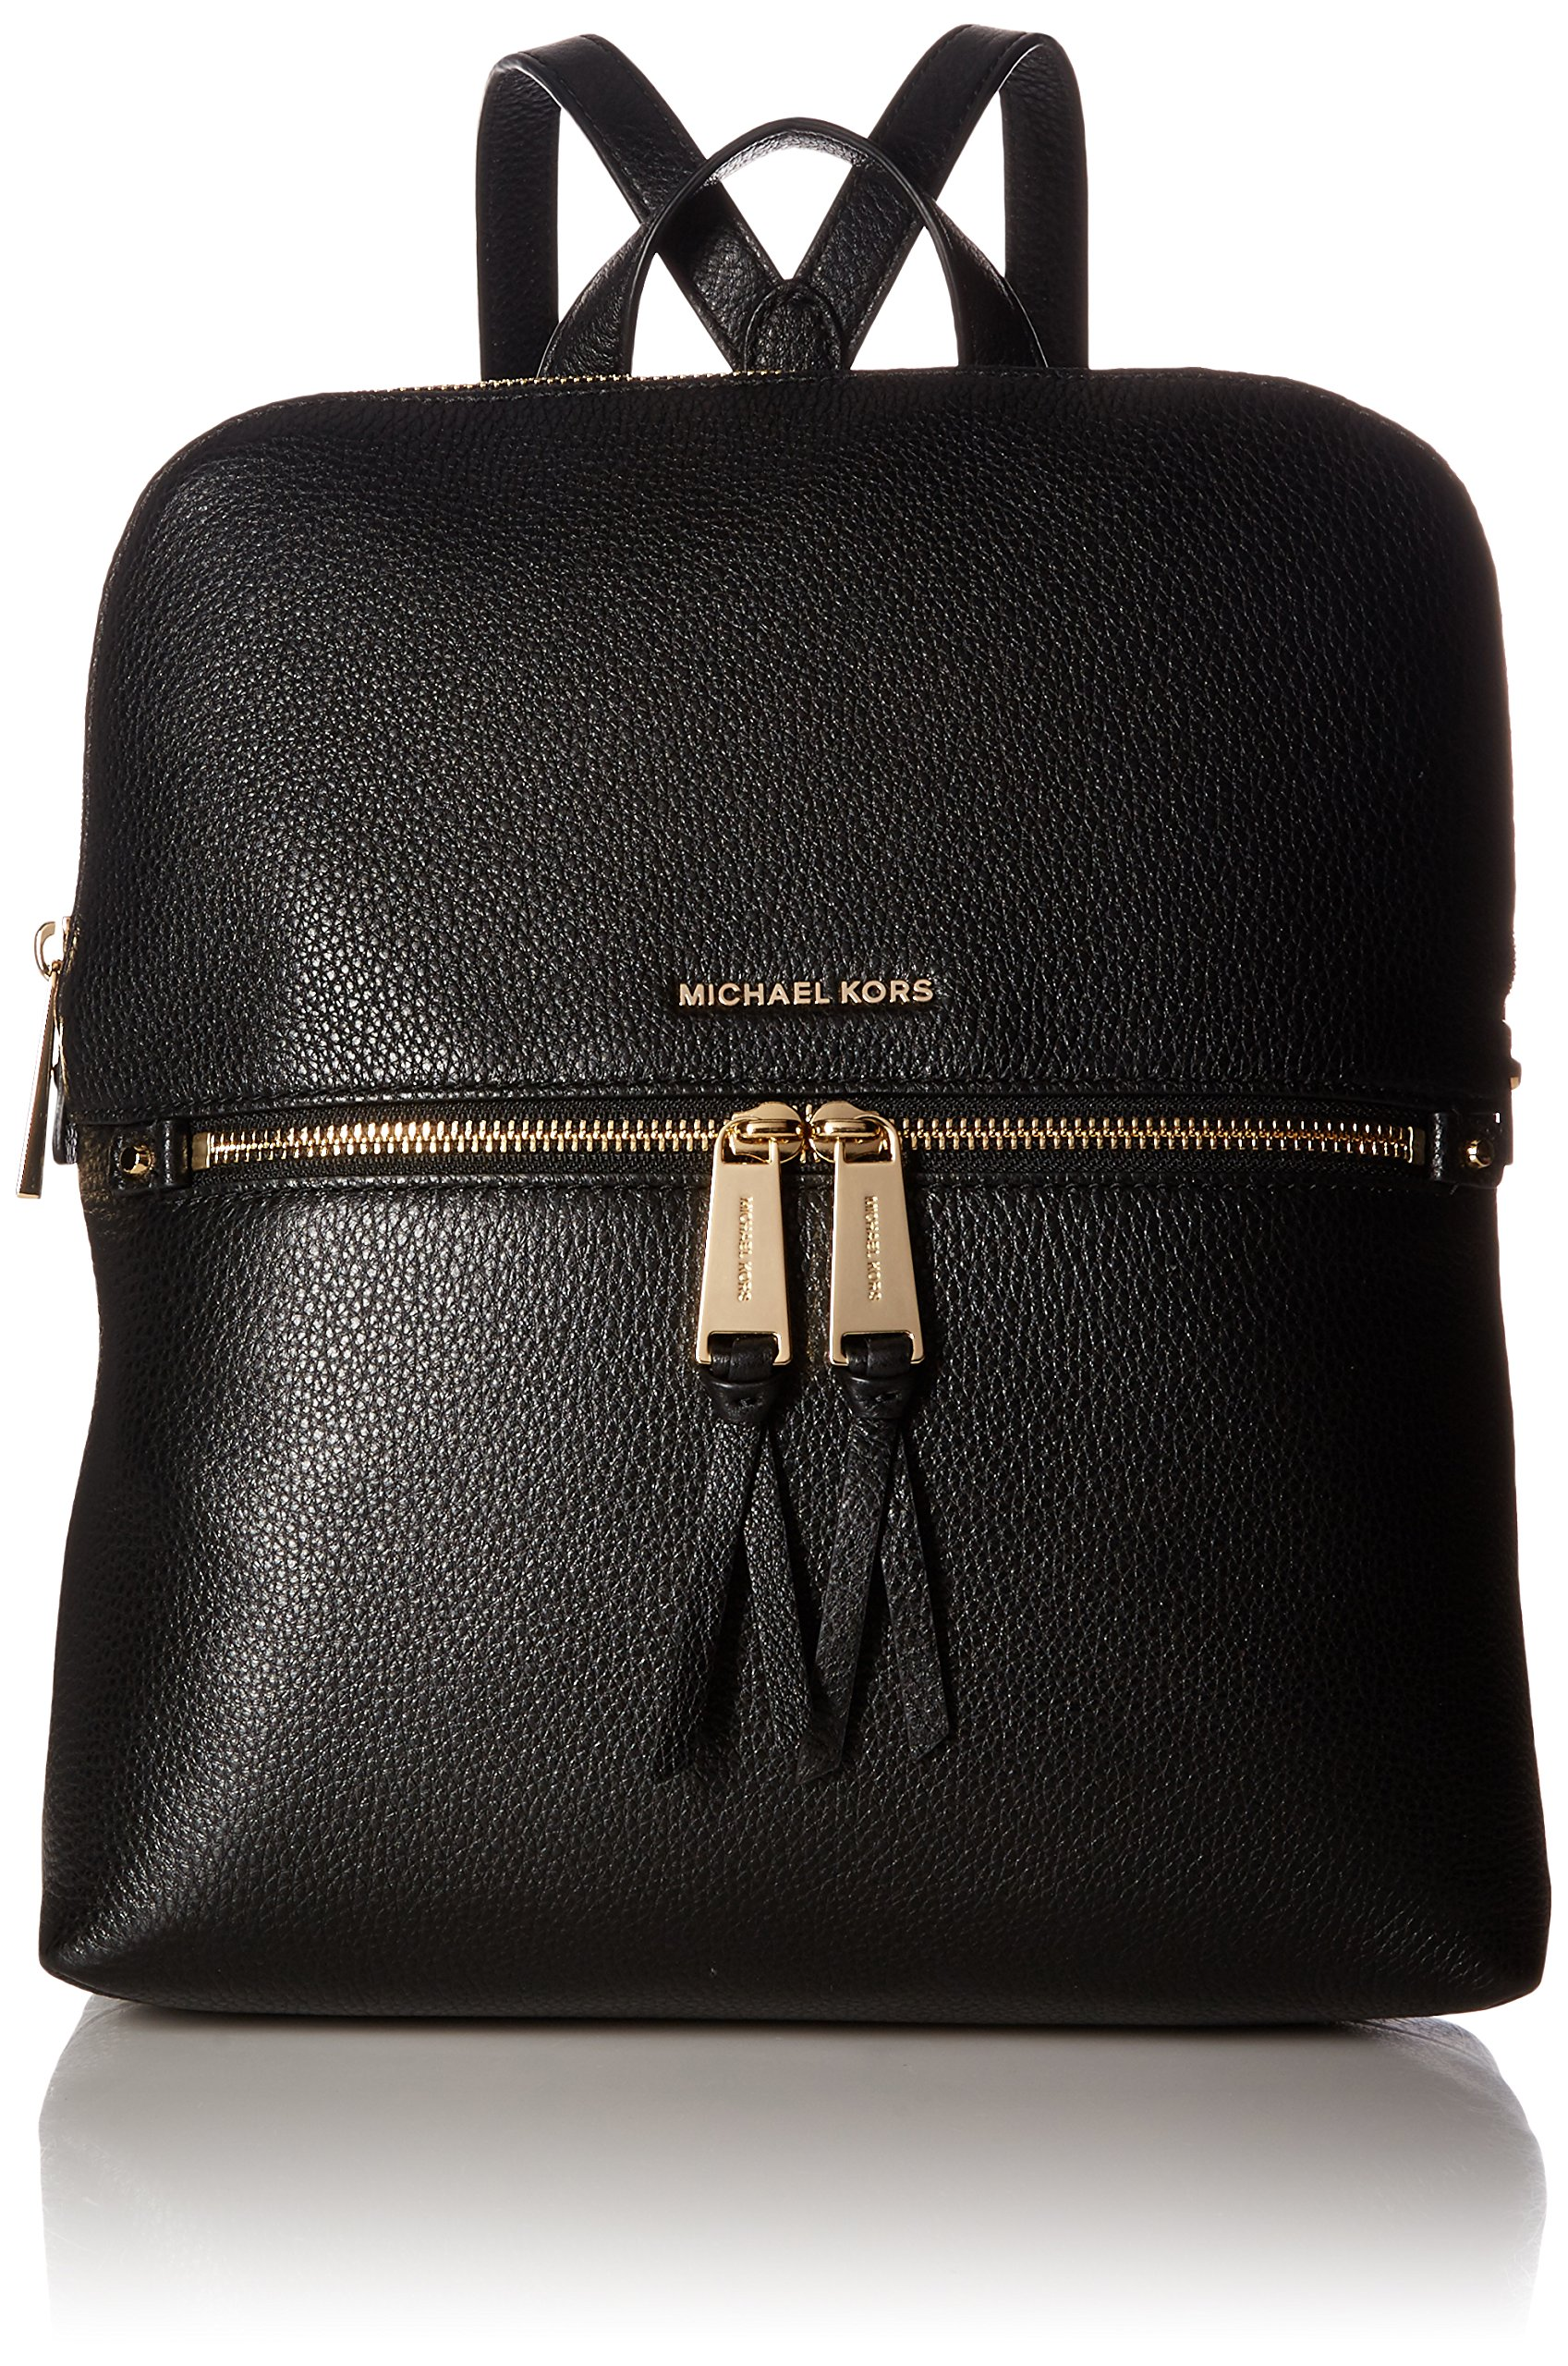 Michael Kors Rhea Zip Medium Slim Backpack in Black